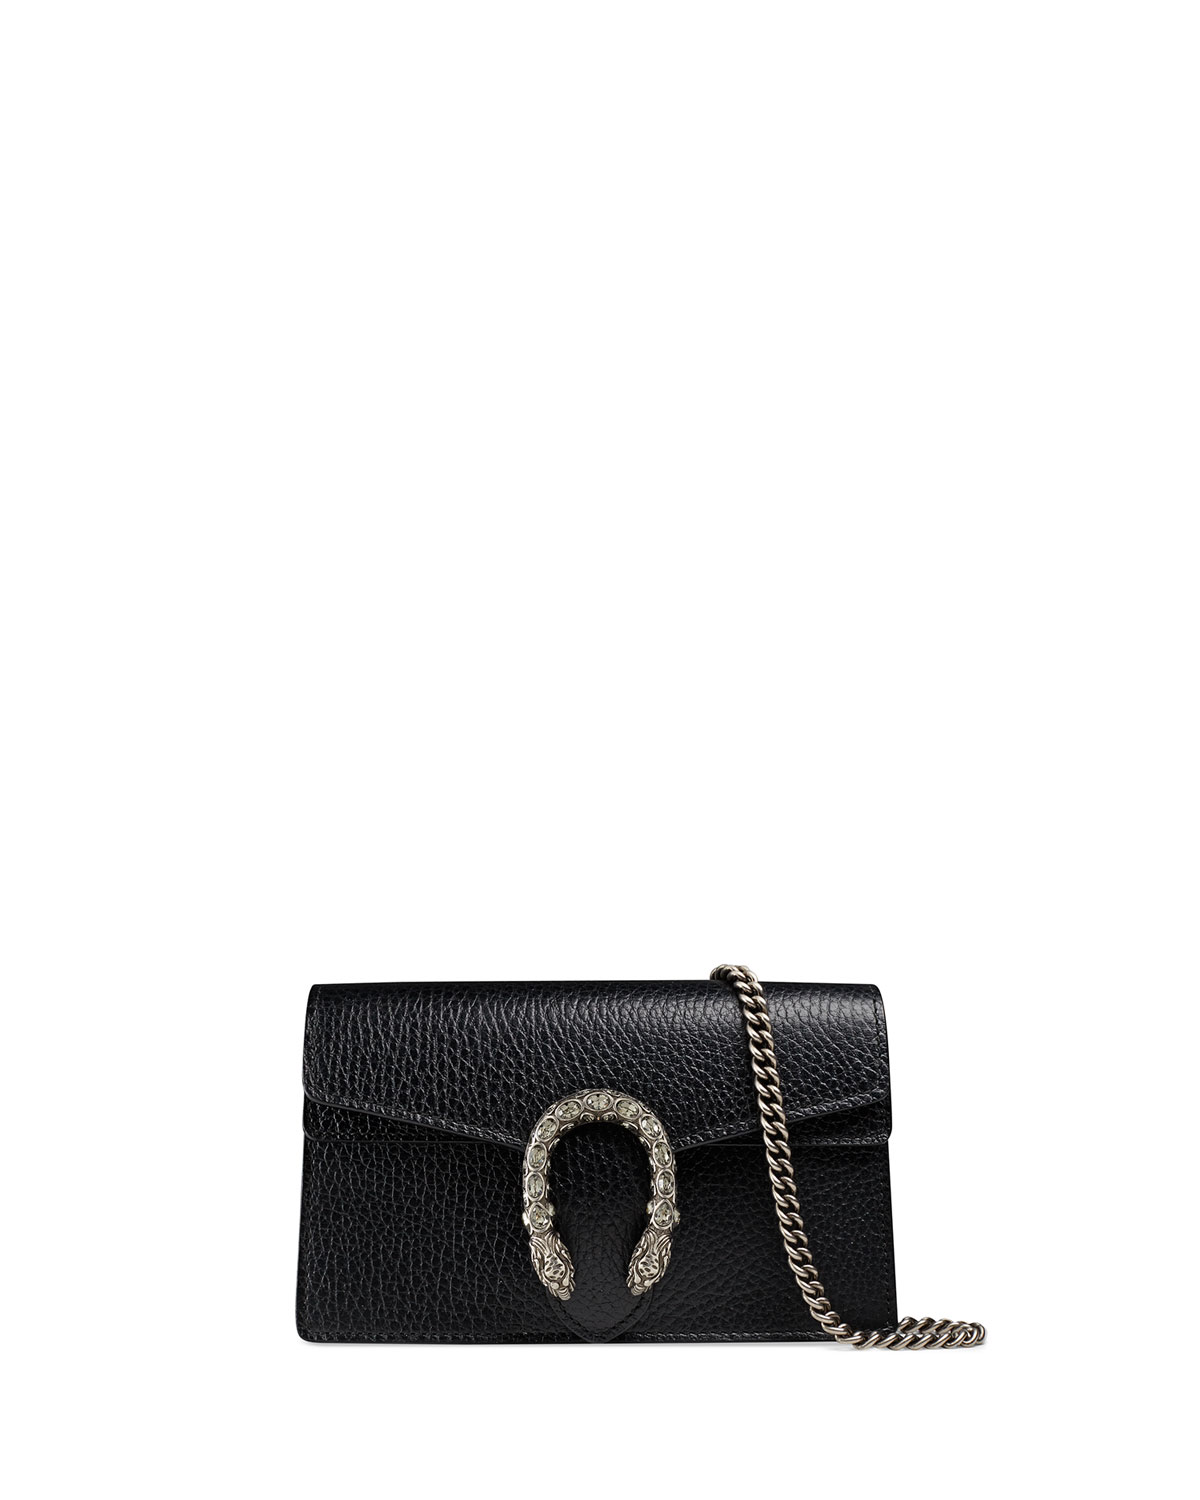 89ebb66c08f7 Gucci Dionysus Leather Super Mini Bag, Black | Neiman Marcus